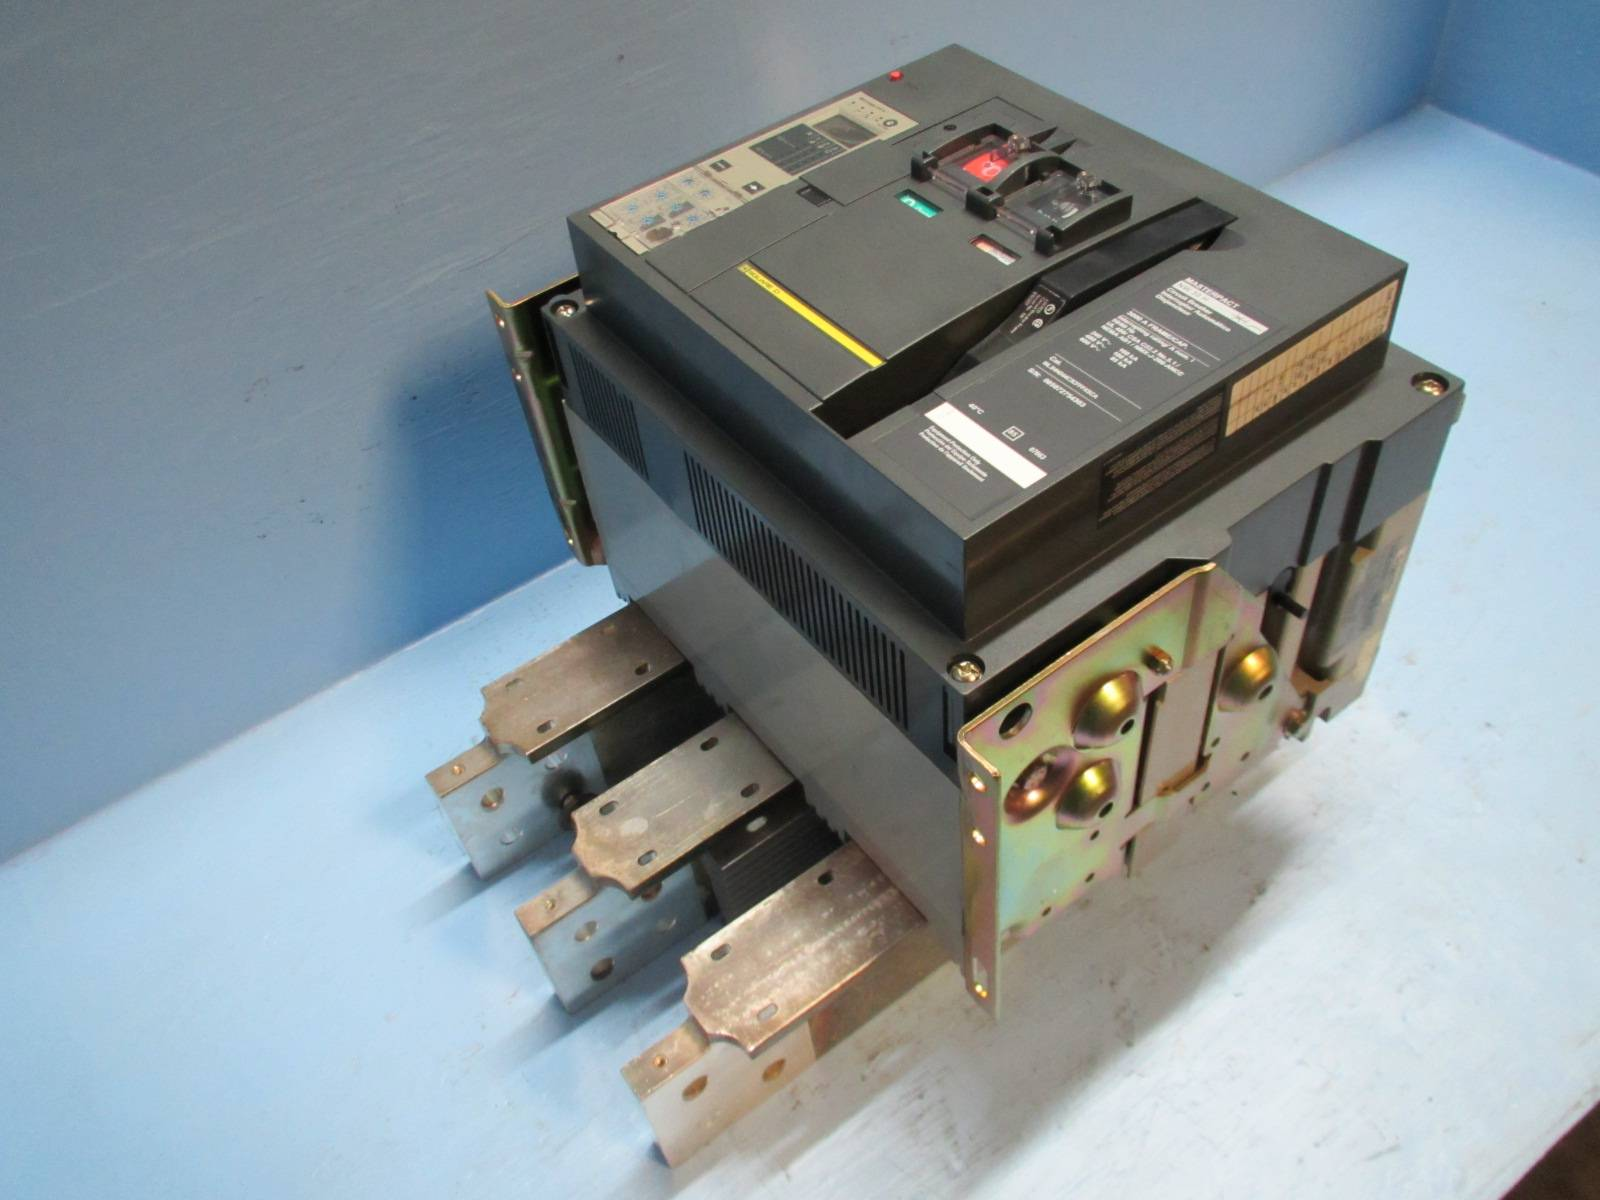 Used Circuit Breakers Fuji Buesb2015 15 Amp 2 Pole Breaker Square D Nw 30 H 3000a Masterpact W 3000 Trip 600v Nw30h Lsi Em1030 1 River City Industrial